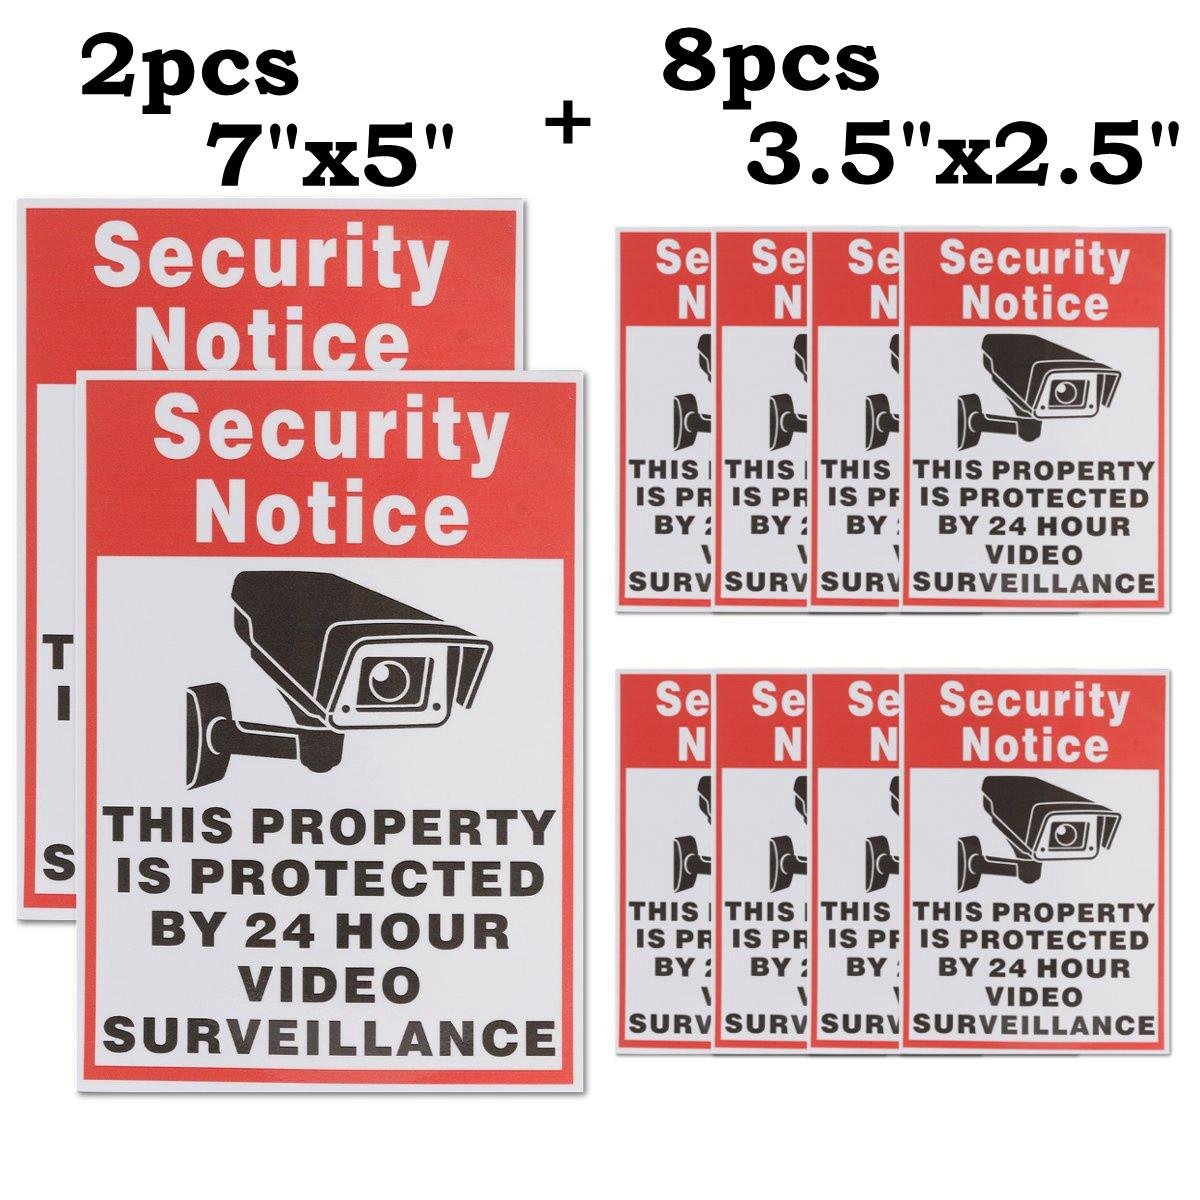 Safurance 10pcs/lot Waterproof Sunscreen PVC Home CCTV Video Surveillance Security Camera Alarm Sticker Warning Decal Signs чайник taller эллингтон tr 1380 2 8л